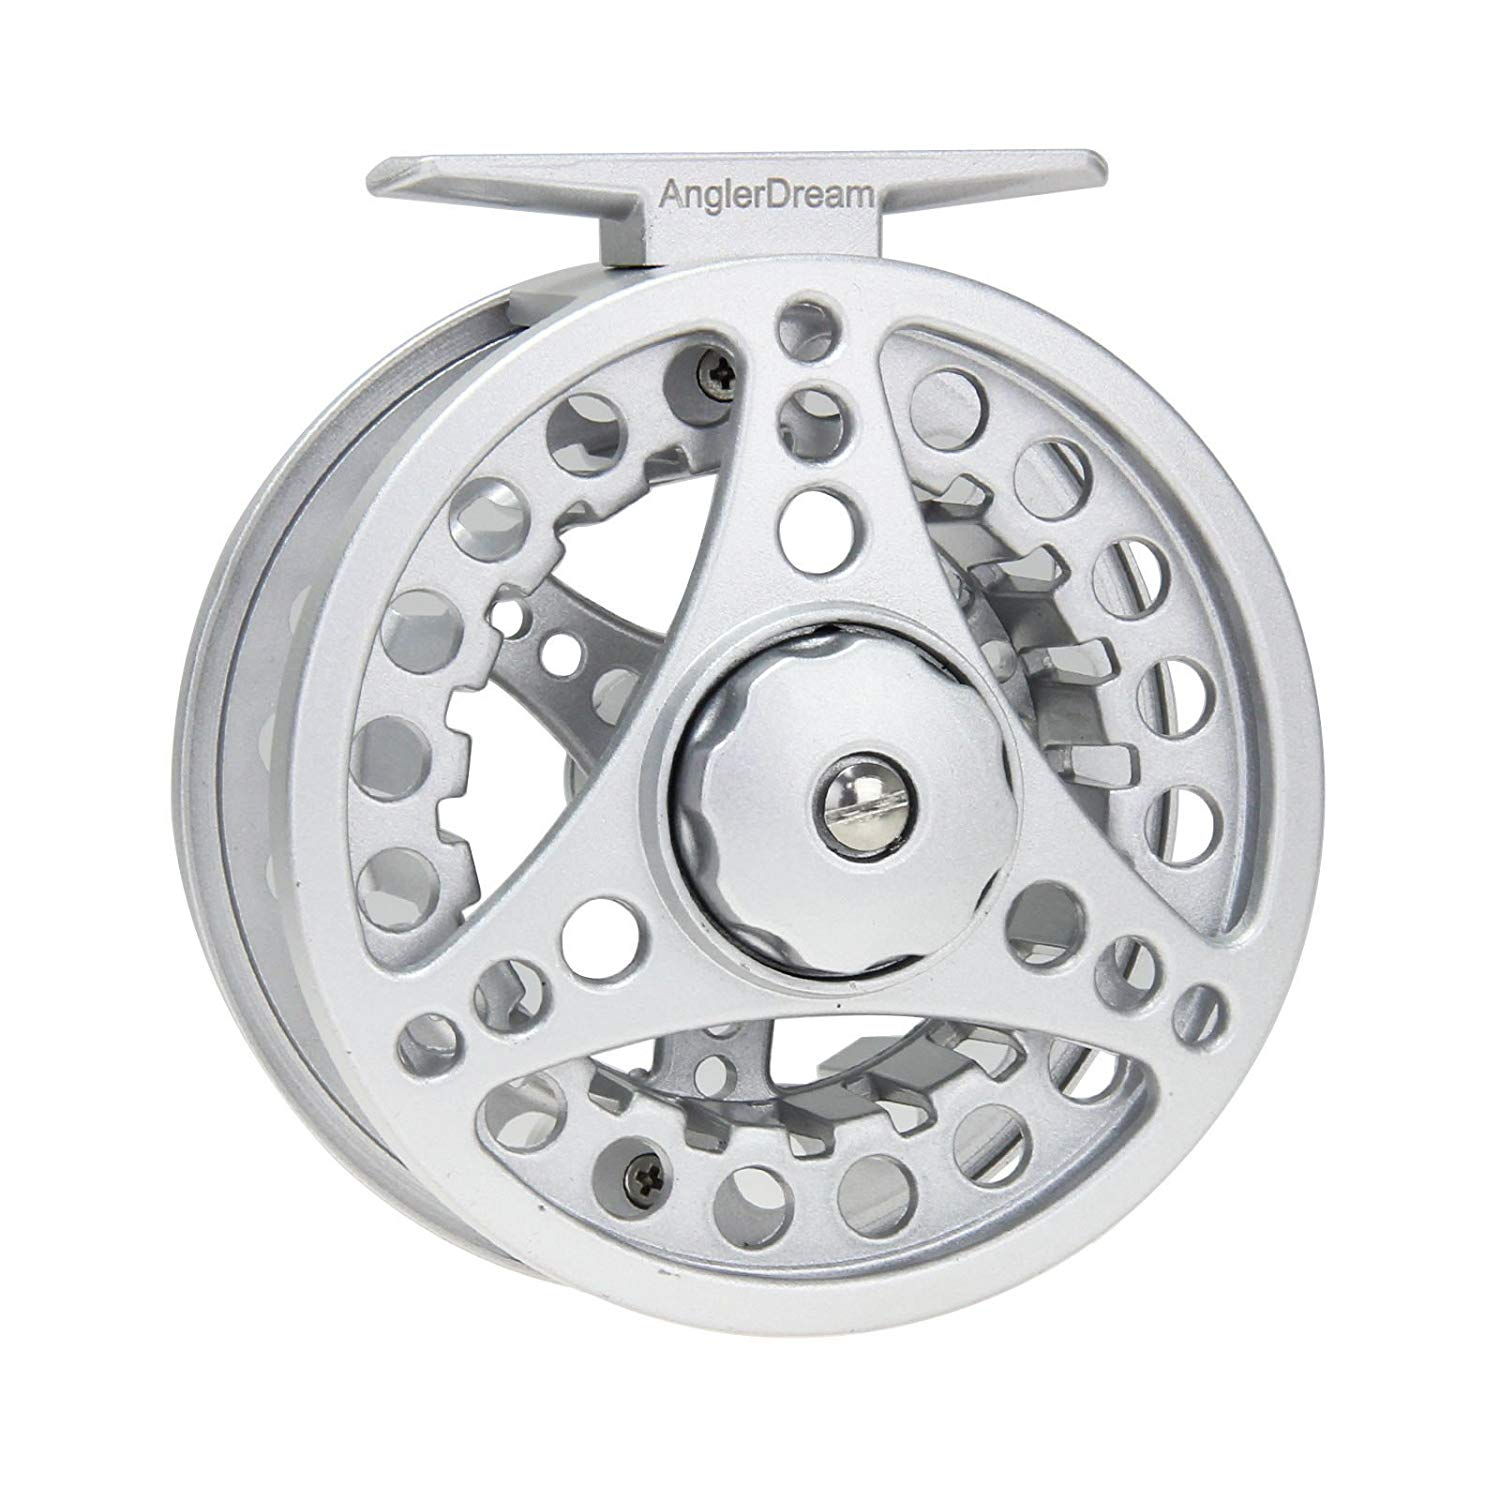 AnglerDream Die Casting Fly Fishing Reel ALC Reel Large Arbor Smooth Spare Spool 1/2 3/4 5/6 7/8 WT Silver Black Hand Changeable Fly Reel